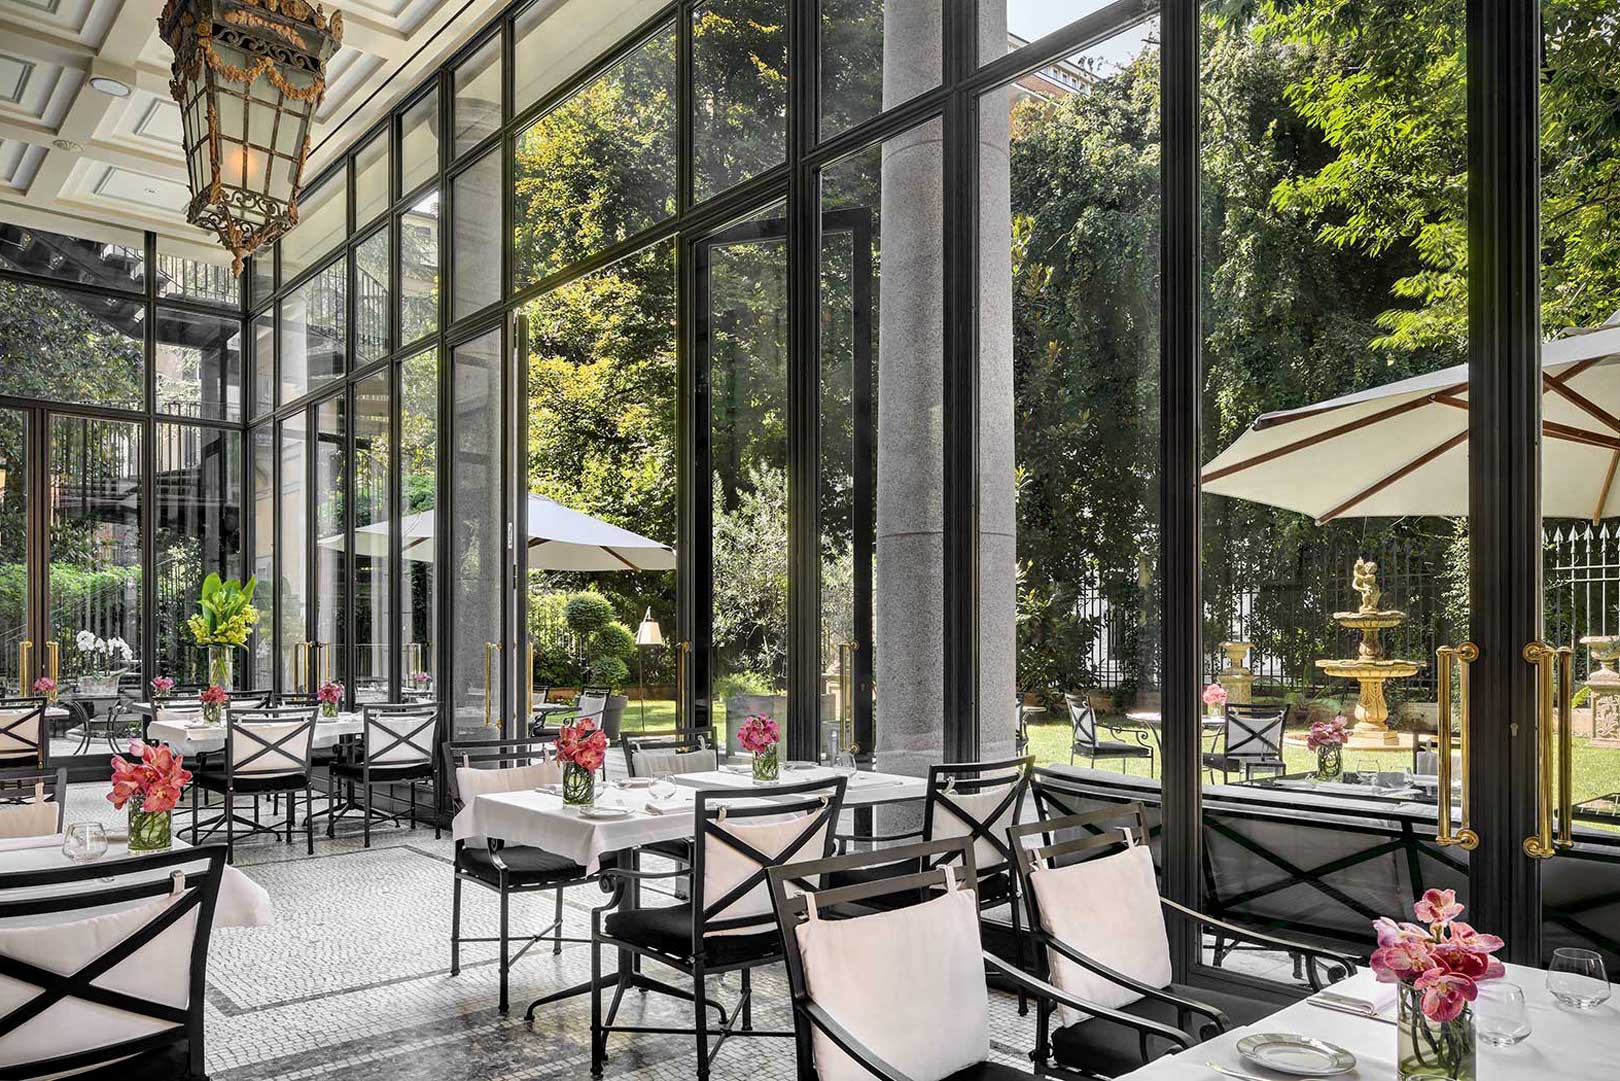 The Best Restaurants With A Garden In Milan